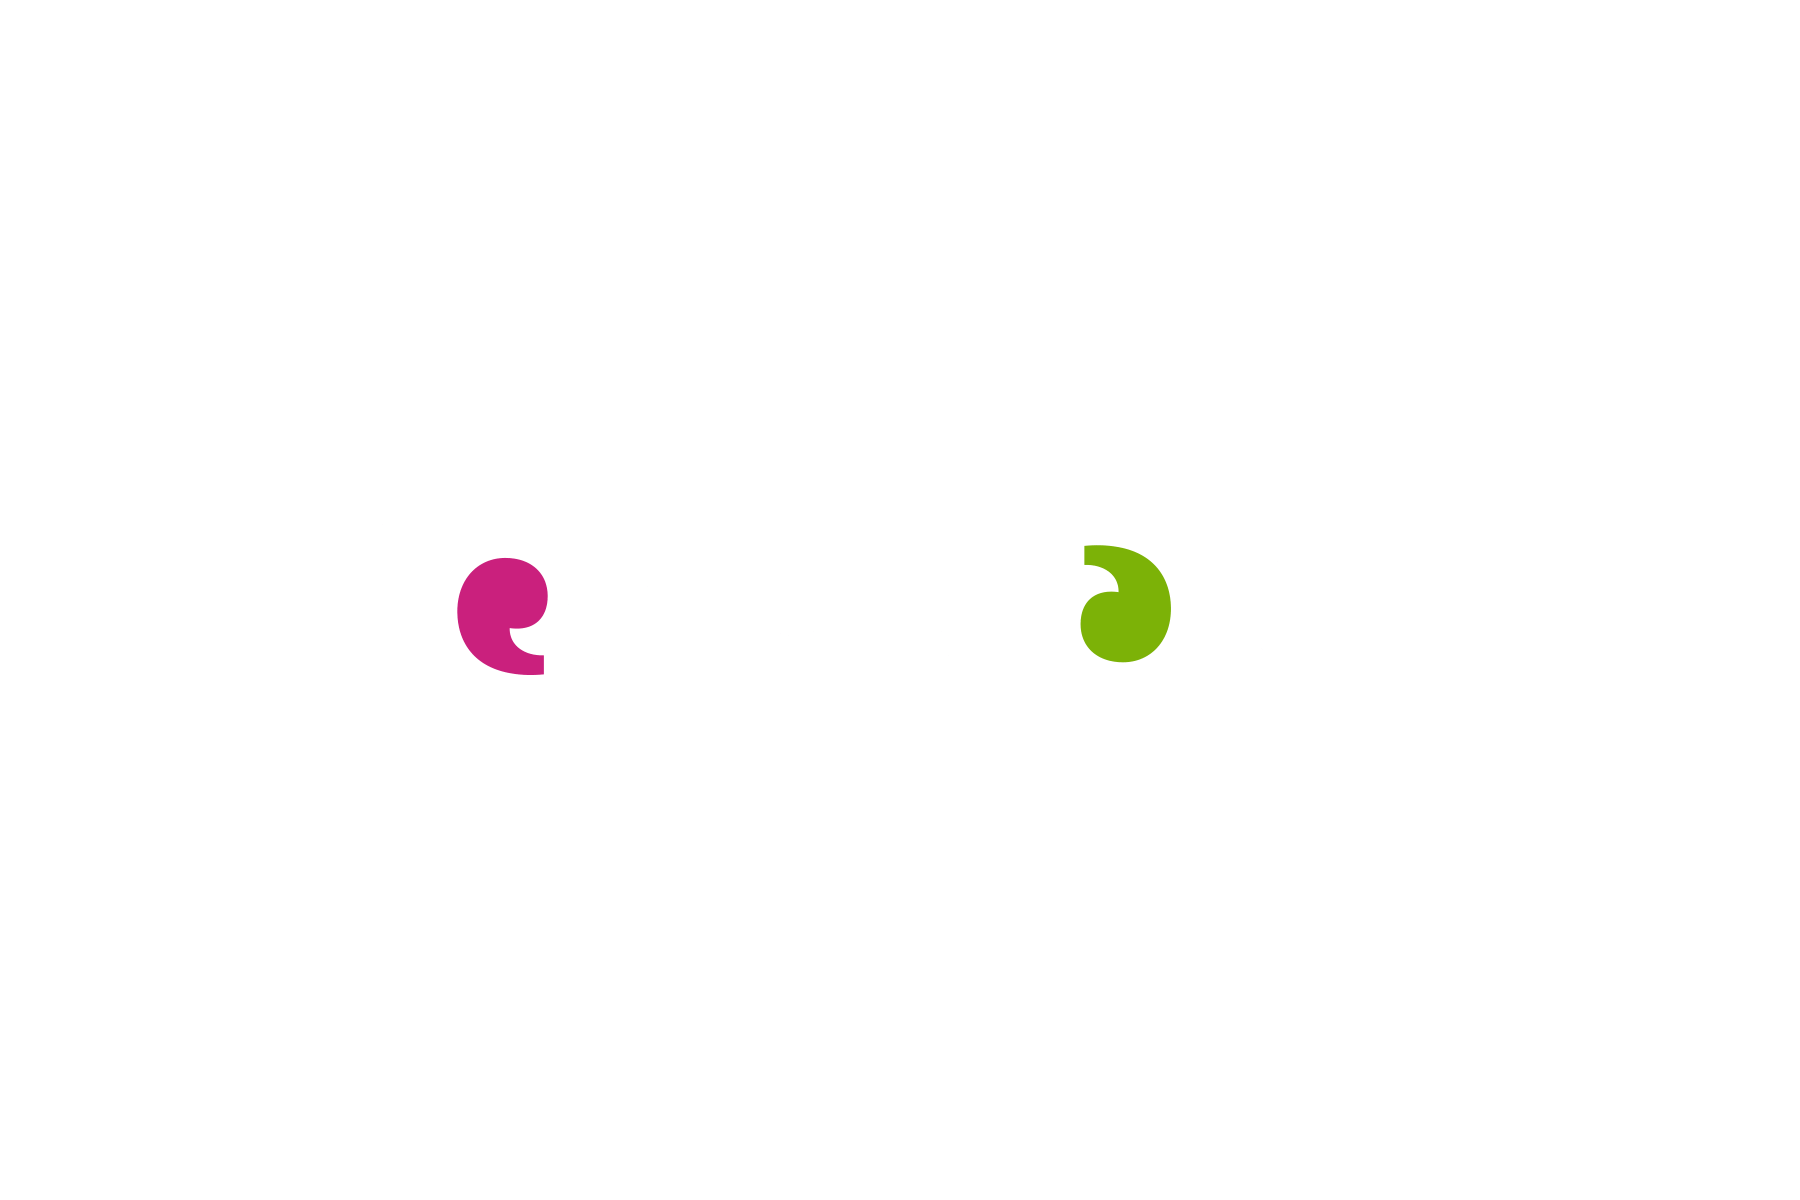 Healthwatch / Making sense of complex health and social issues